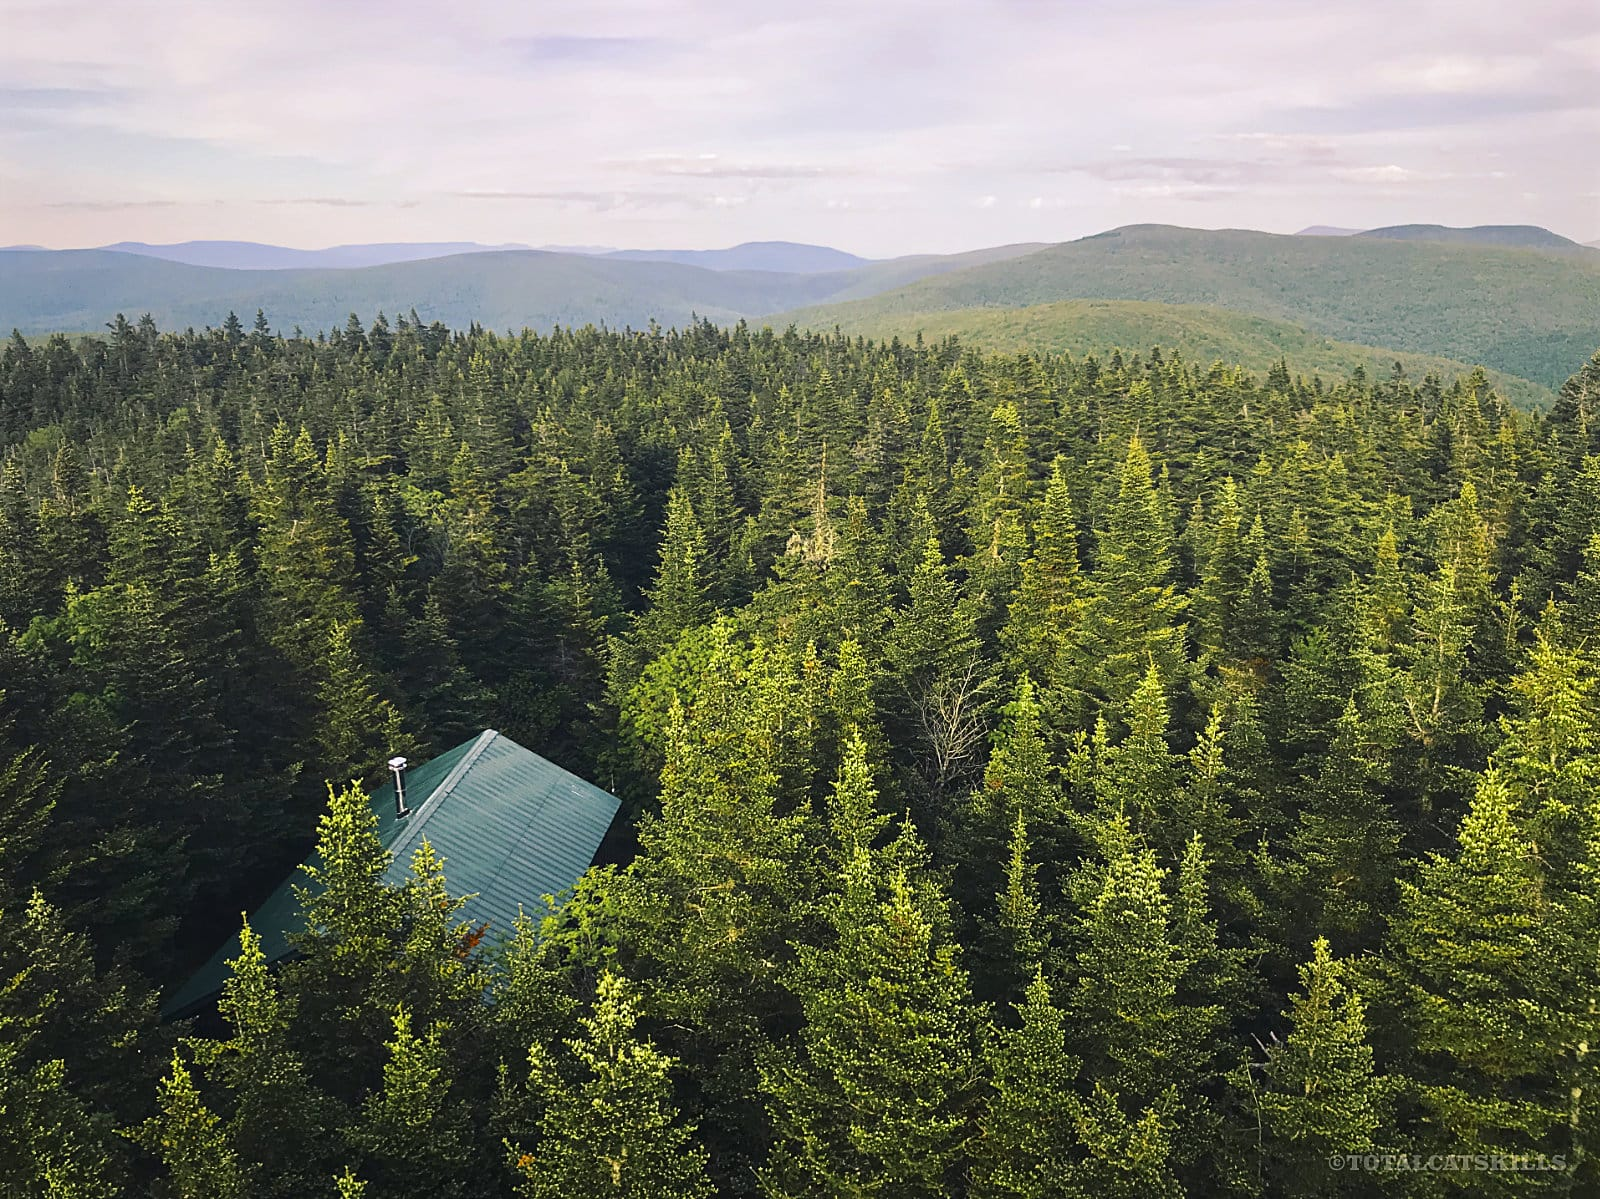 fire tower view across conifer forest